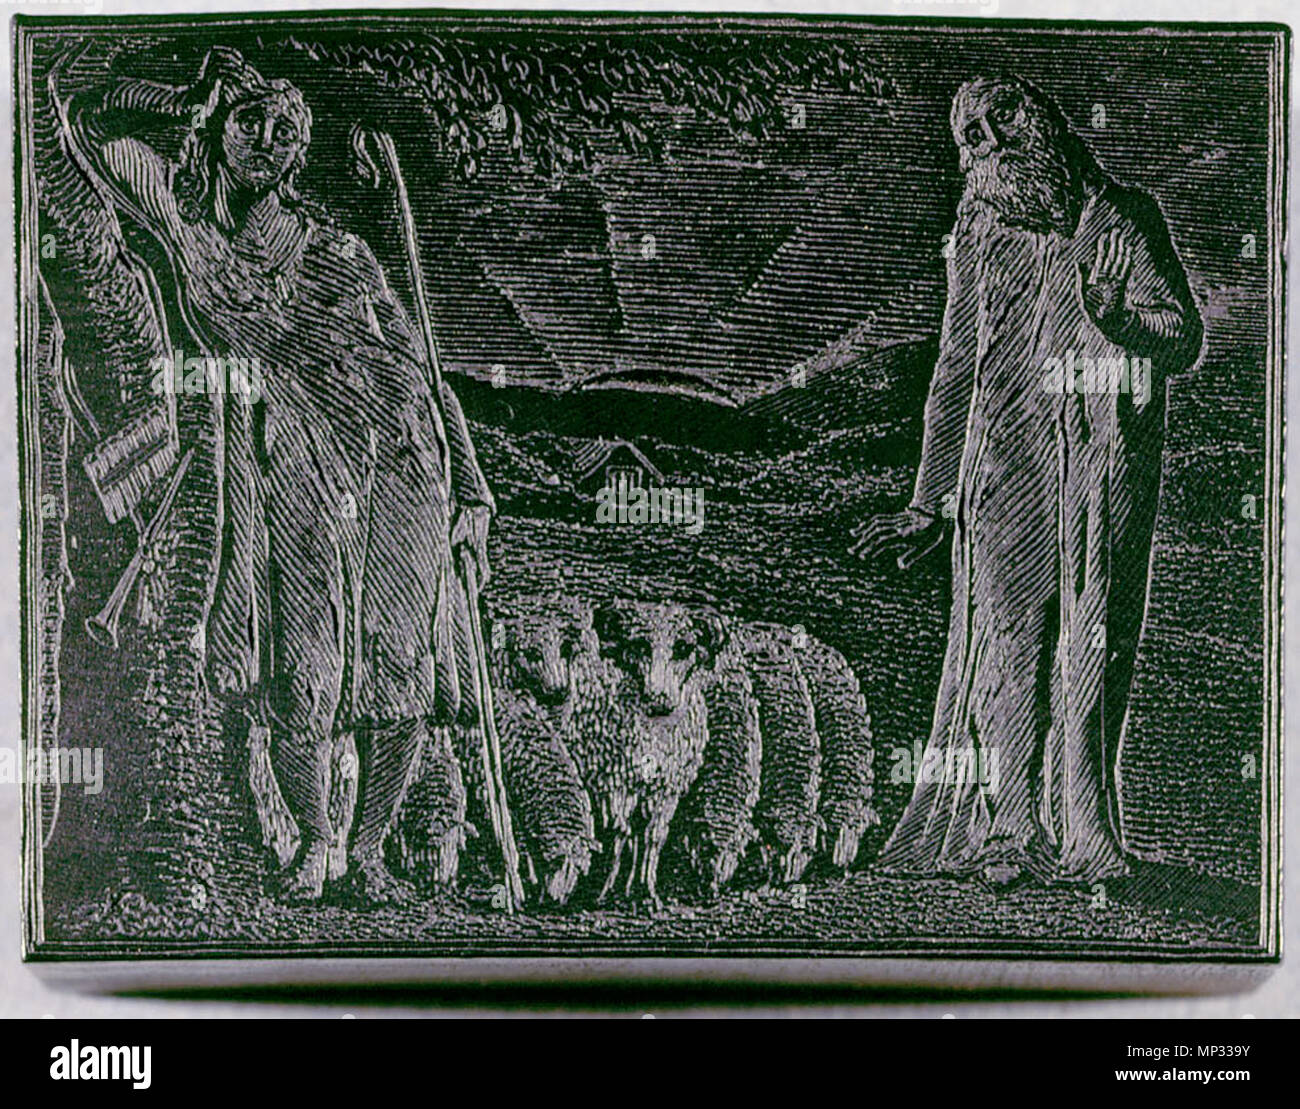 . English: The Pastorals of Virgil, related materials, object 5 woodblock bb504 bm-woodengraving 5 300 . 1 March 2010, 08:59:54.   William Blake (1757–1827)   Alternative names W. Blake; Uil'iam Bleik  Description British painter, poet, writer, theologian, collector and engraver  Date of birth/death 28 November 1757 12 August 1827  Location of birth/death Broadwick Street Charing Cross  Work location London  Authority control  : Q41513 VIAF:54144439 ISNI:0000 0001 2096 135X ULAN:500012489 LCCN:n78095331 NLA:35019221 WorldCat     This is a faithful photographic reproduction of a two-d - Stock Image